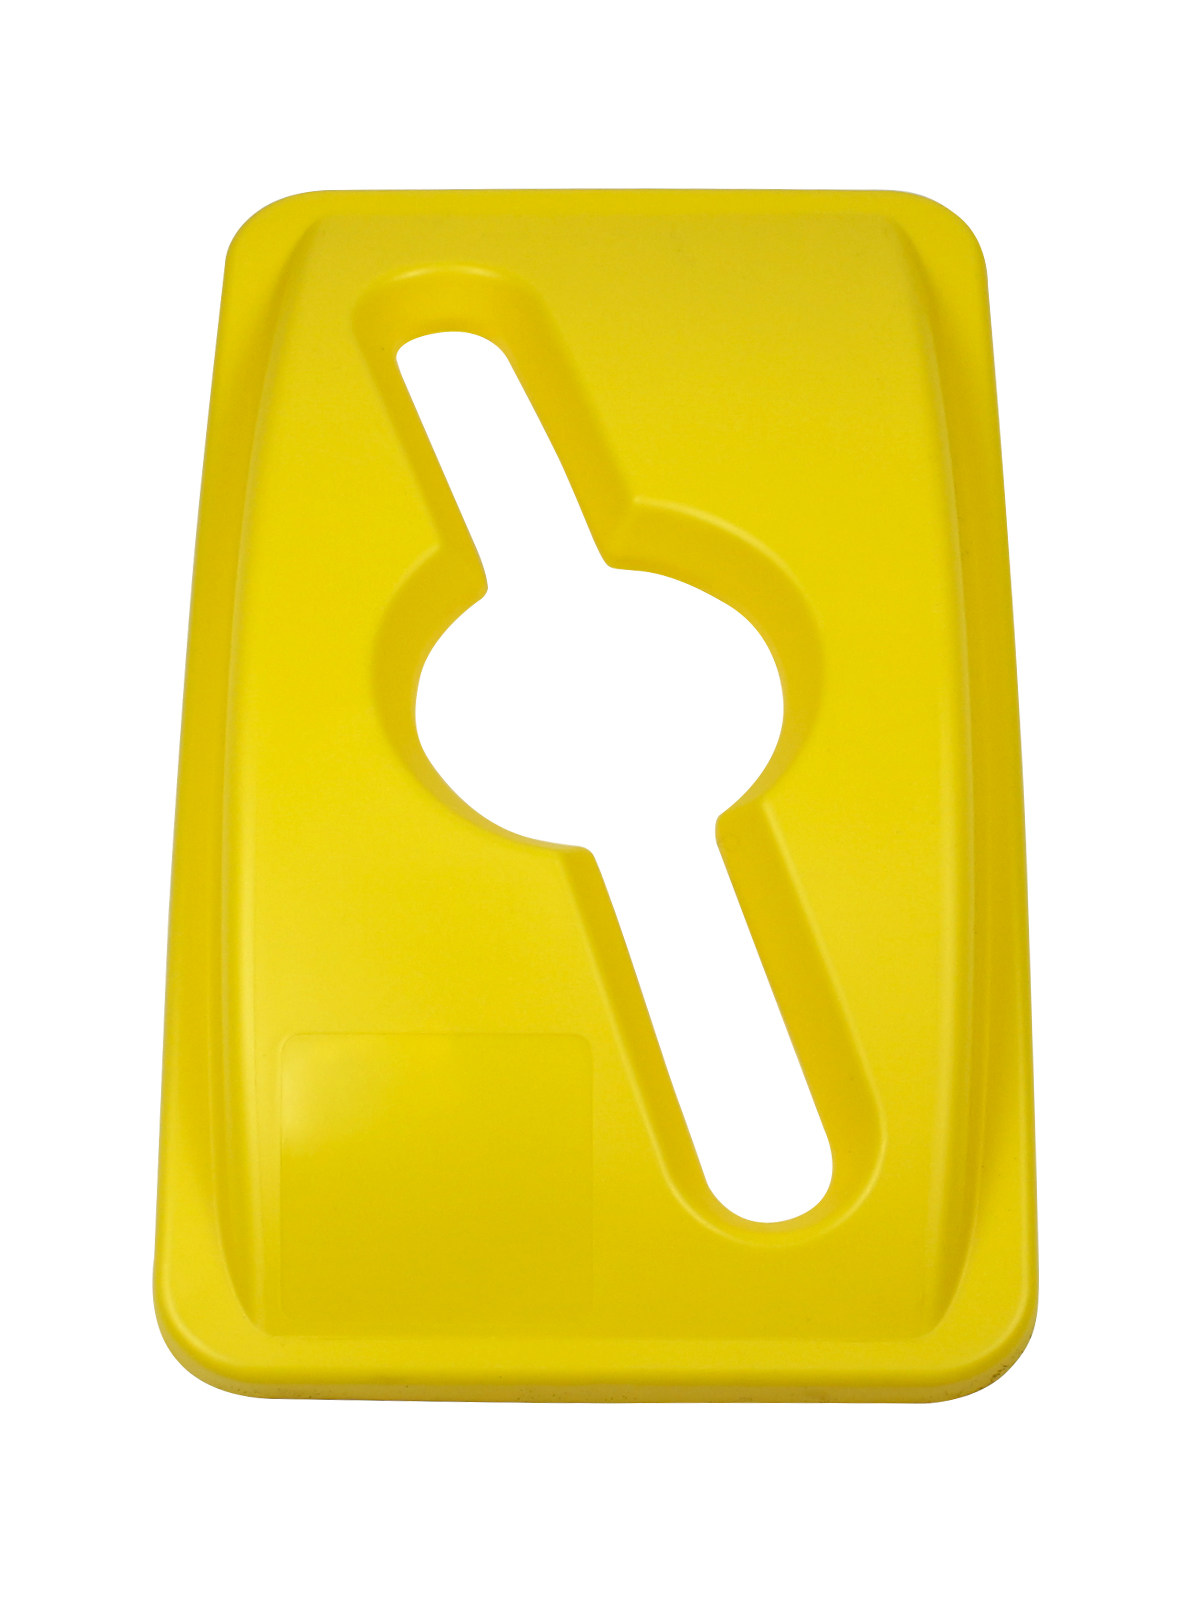 WASTE WATCHER - Single - Lid - Mixed - Yellow